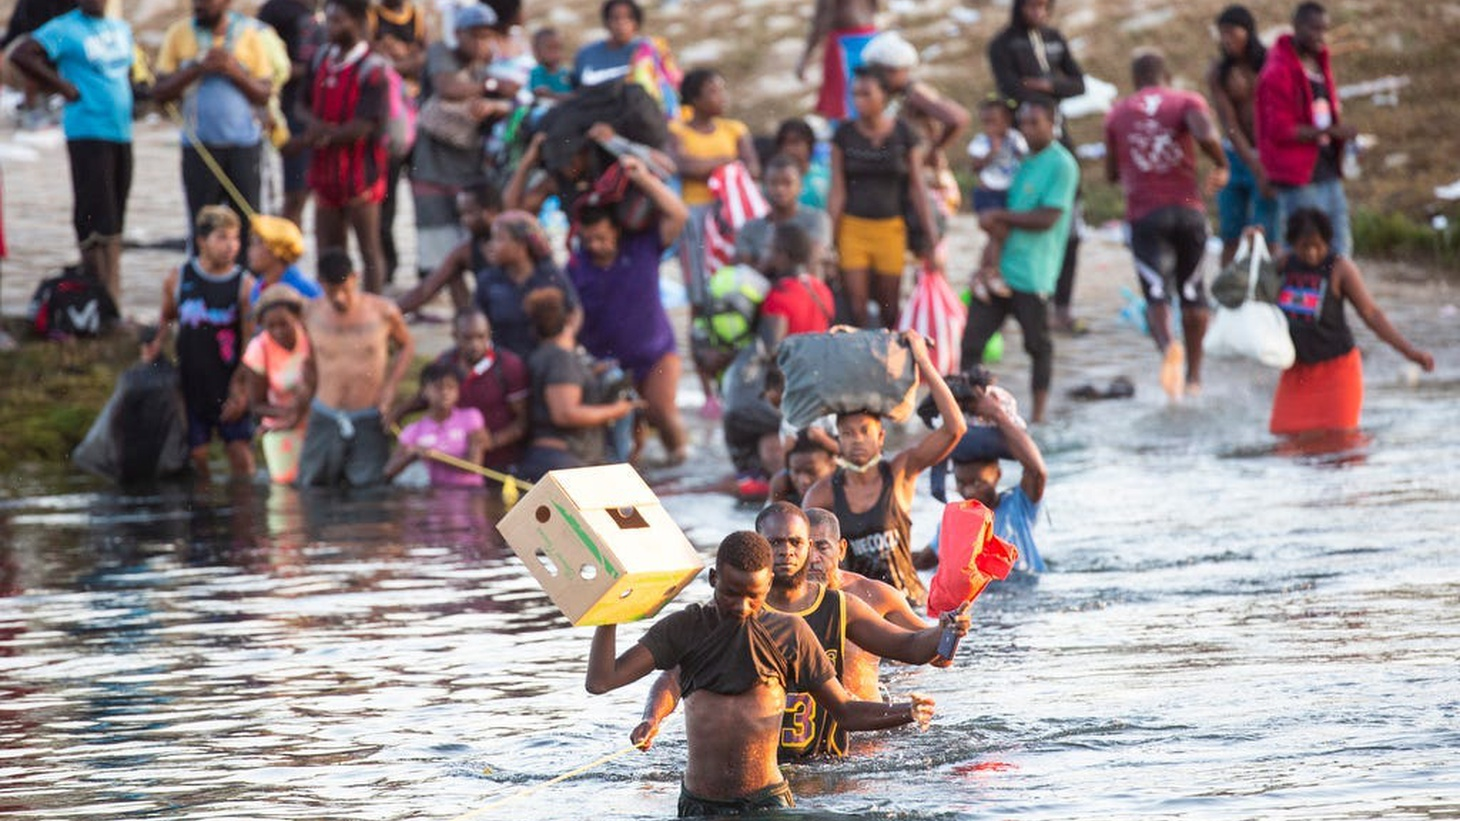 Haitian migrants cross the Rio Grande south into Ciudad Acuna from Del Rio, Texas, as they leave the migrant encampment underneath the Del Rio International Bridge after concerns of food scarcity and expulsions to Haiti on Sept. 20, 2021.